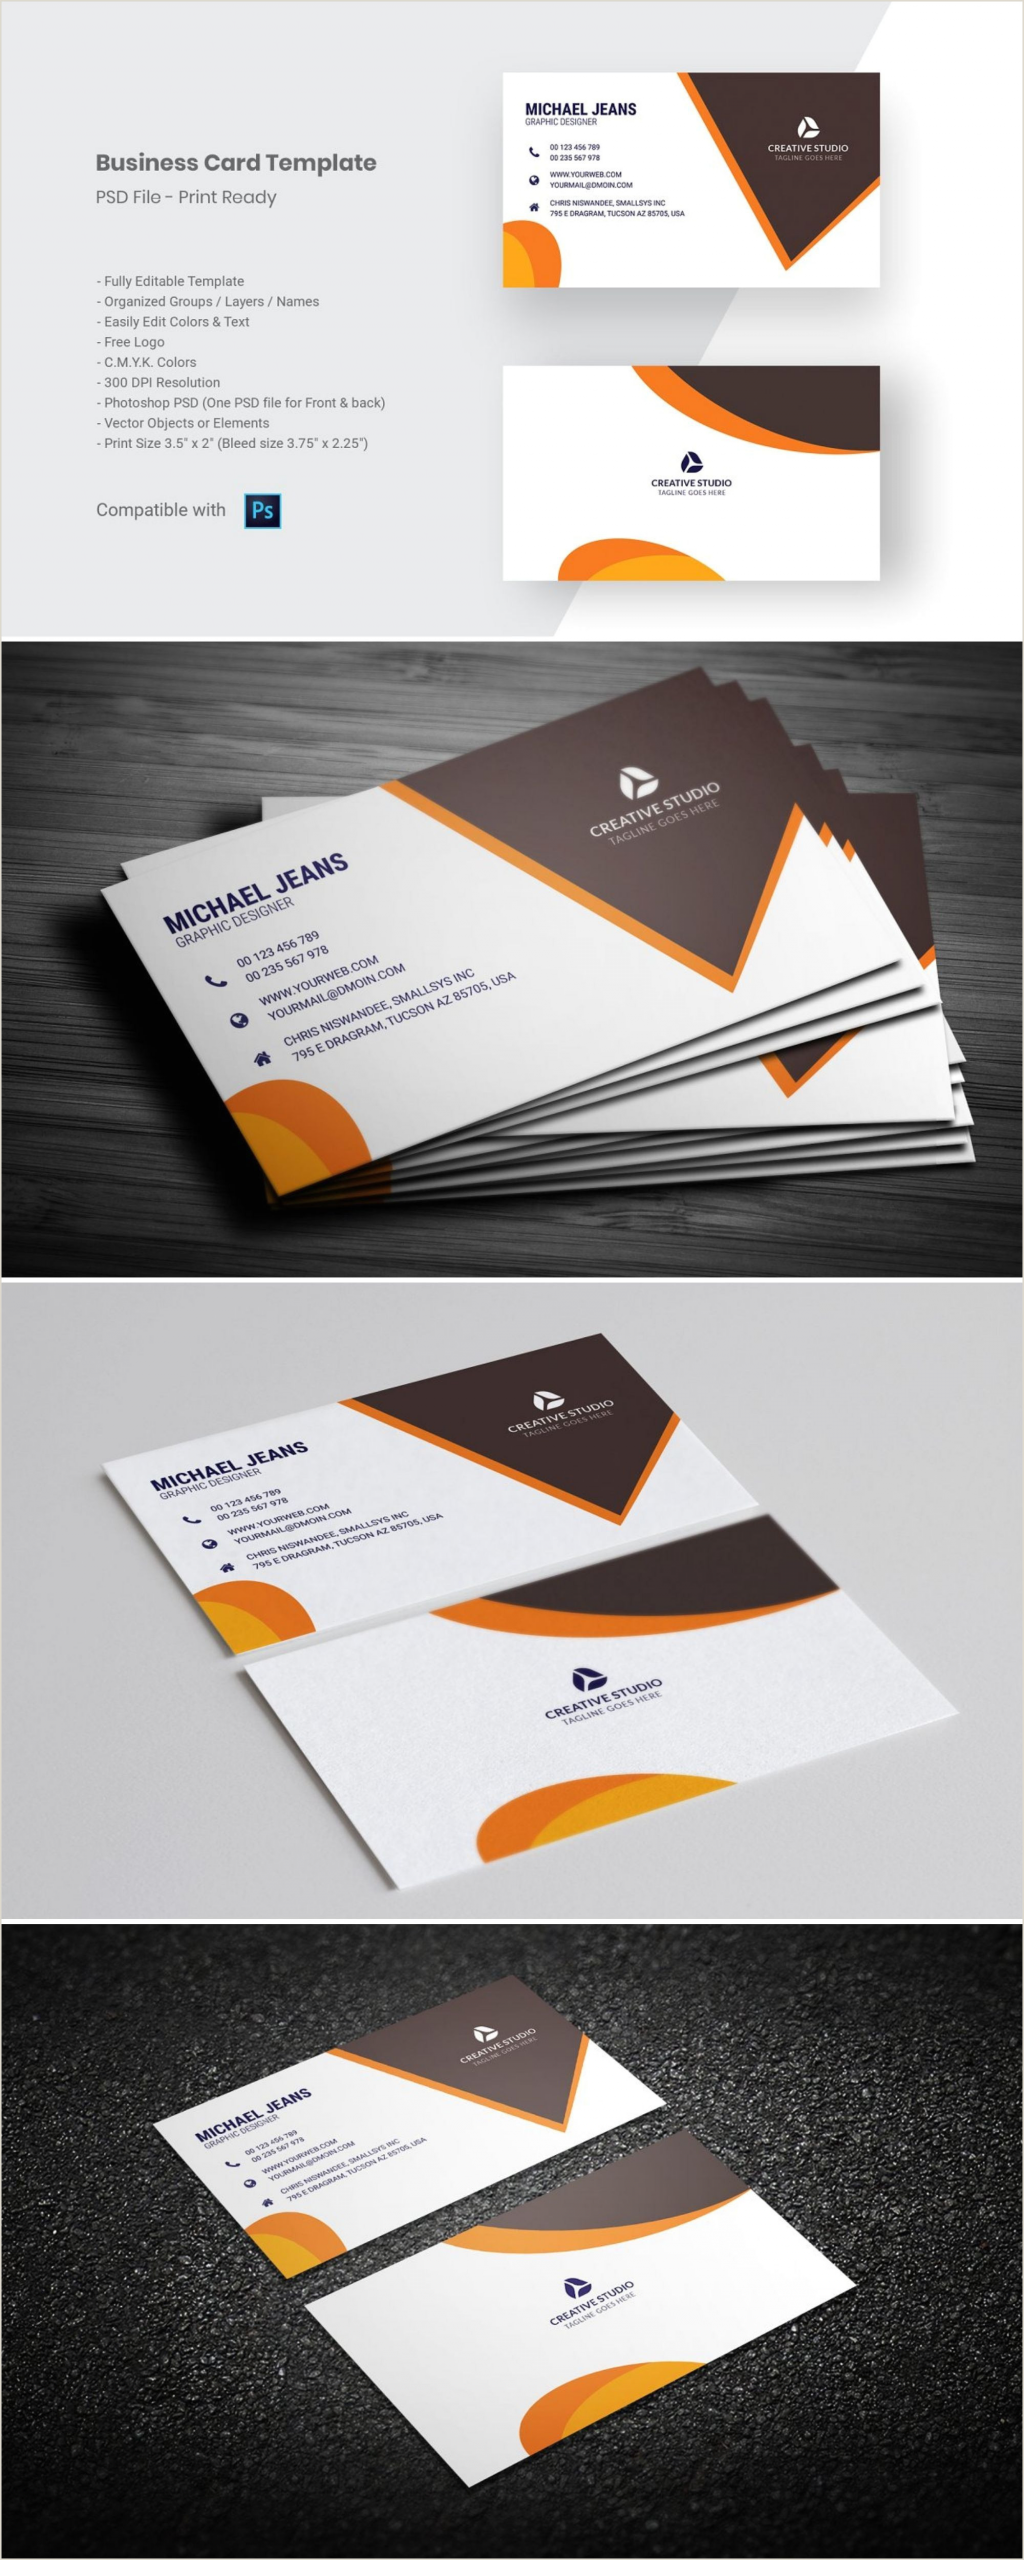 Personal Calling Card Designs Modern Business Card Template